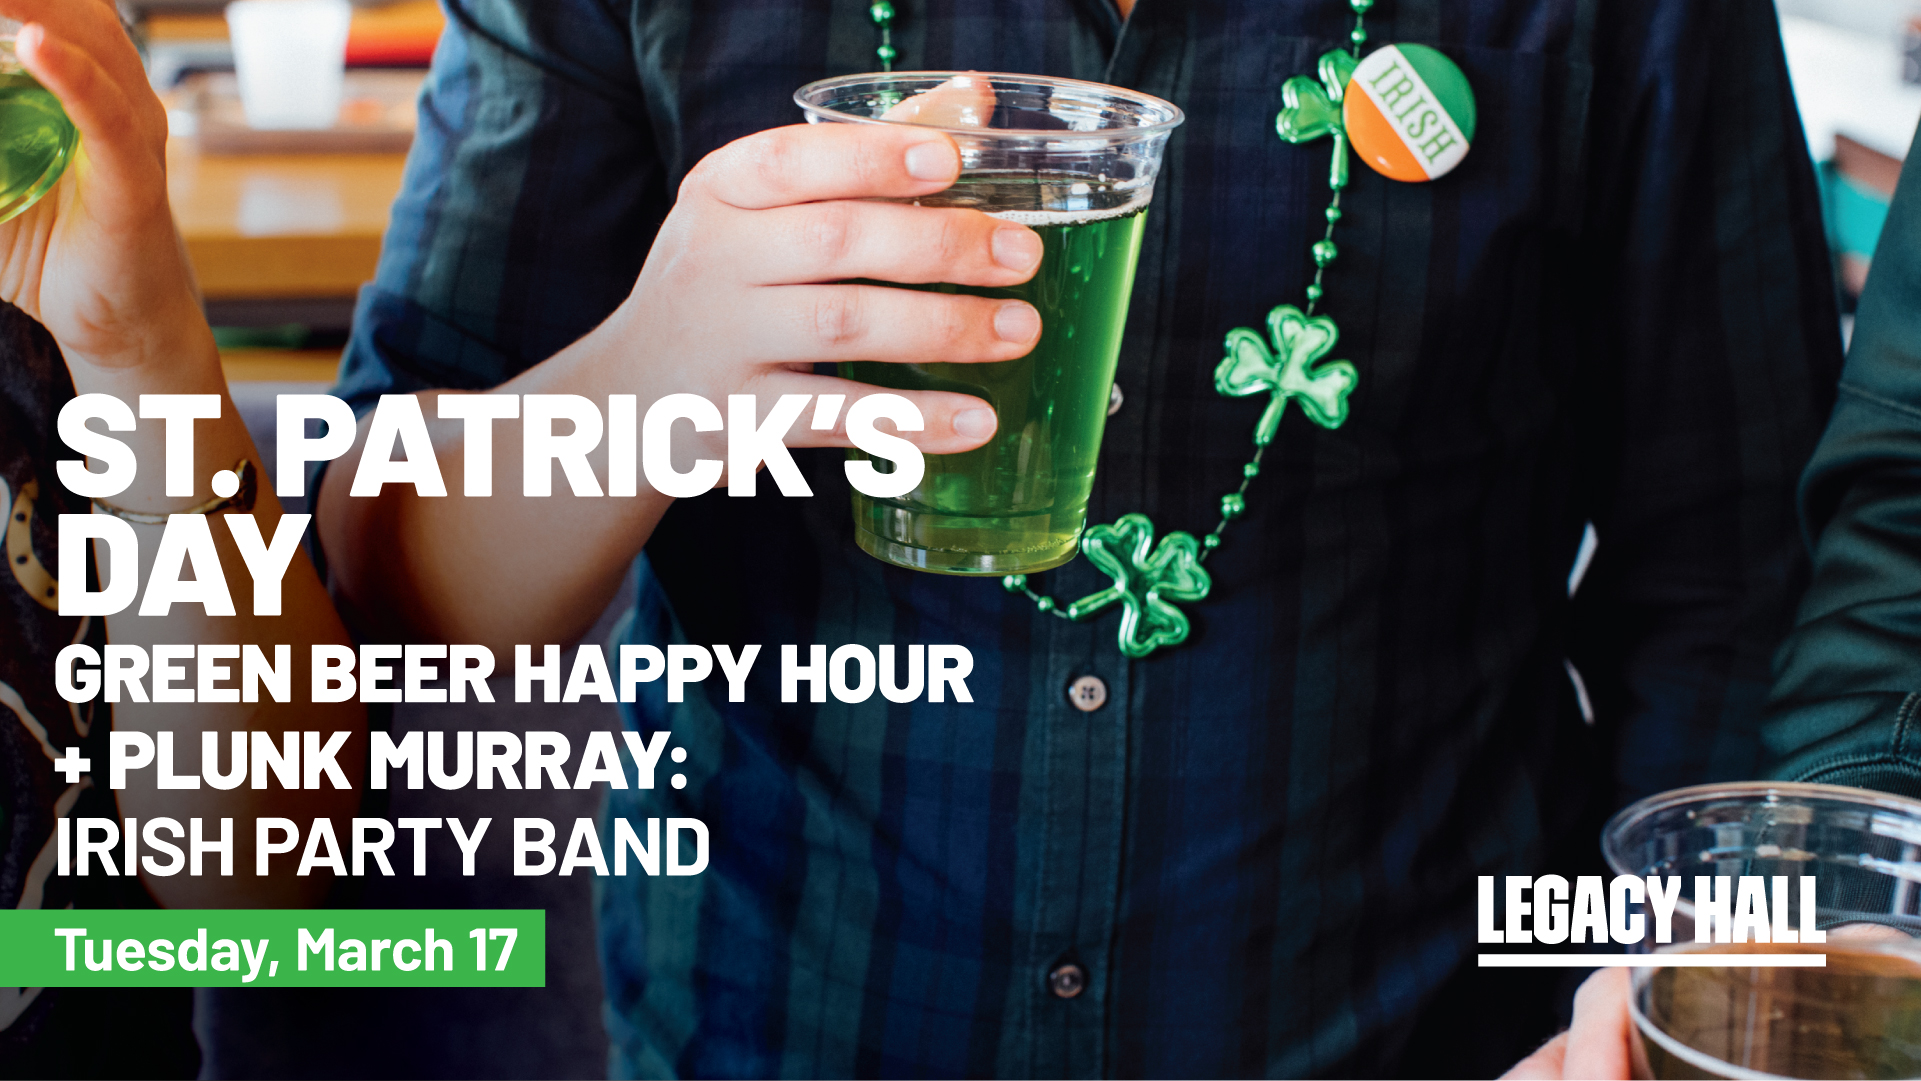 Promo image of St. Patrick's Day Party at Legacy Hall